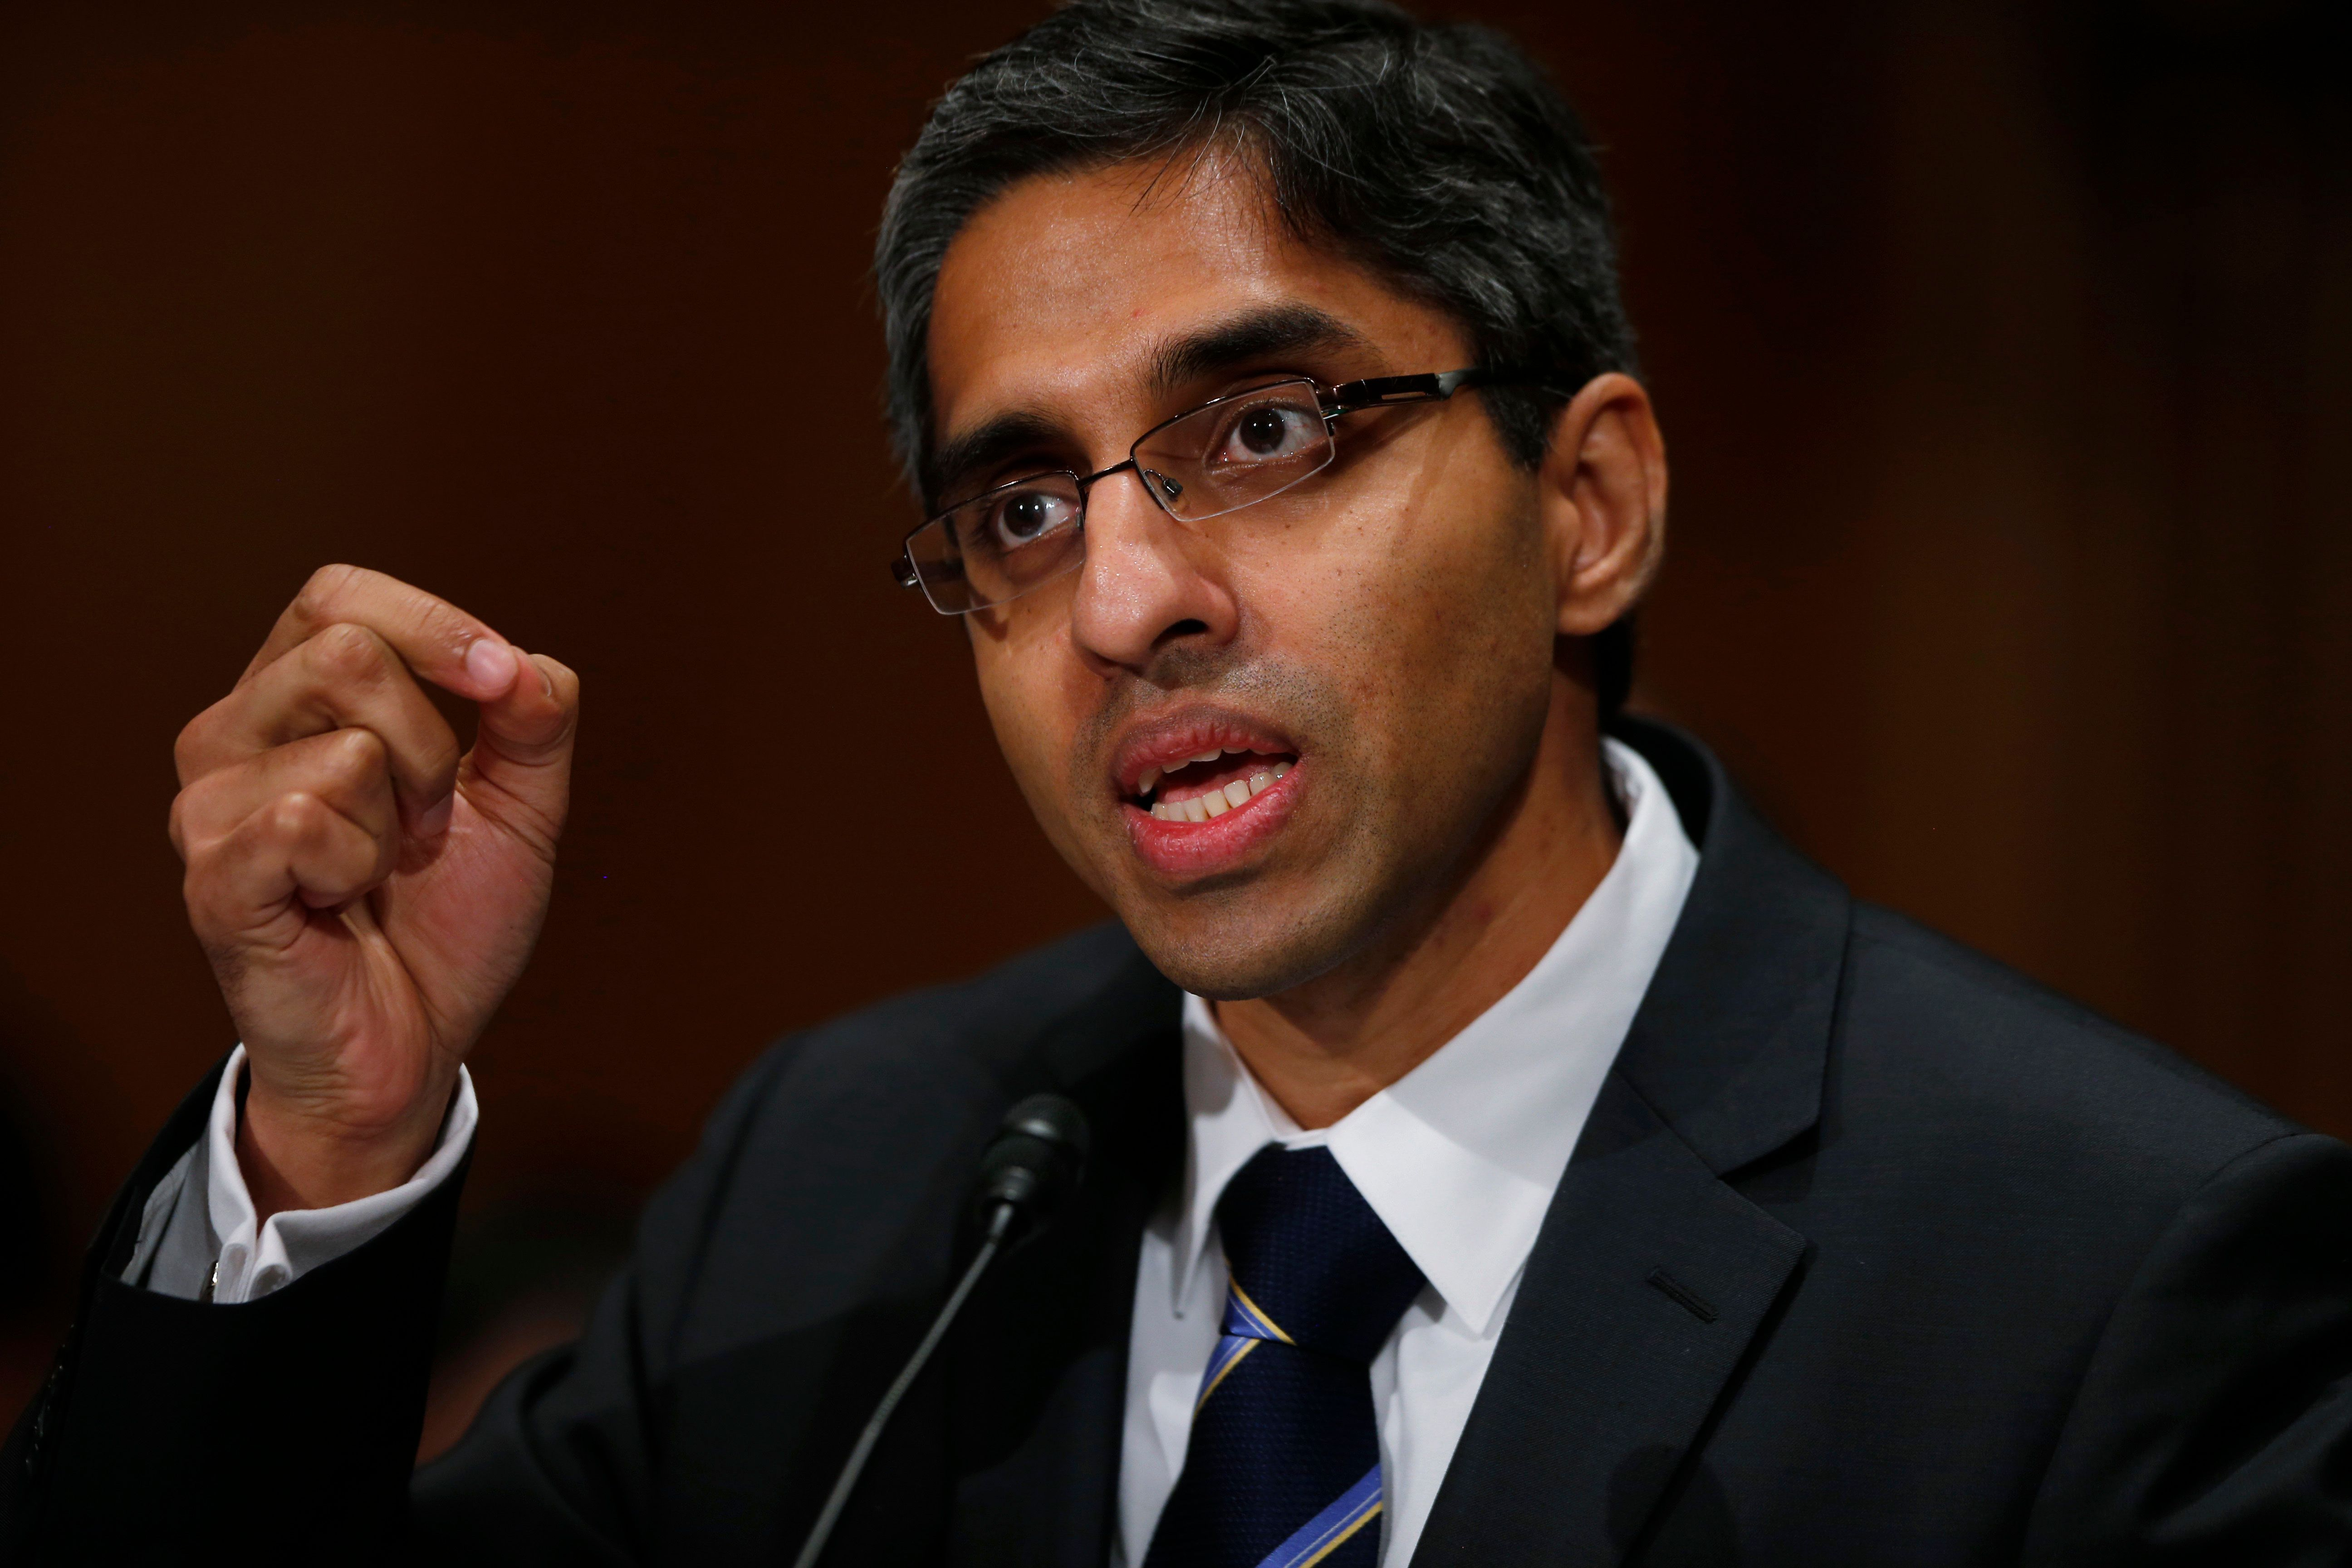 U.S. Surgeon General: Addiction Is A Chronic Brain Disease, Not A Moral